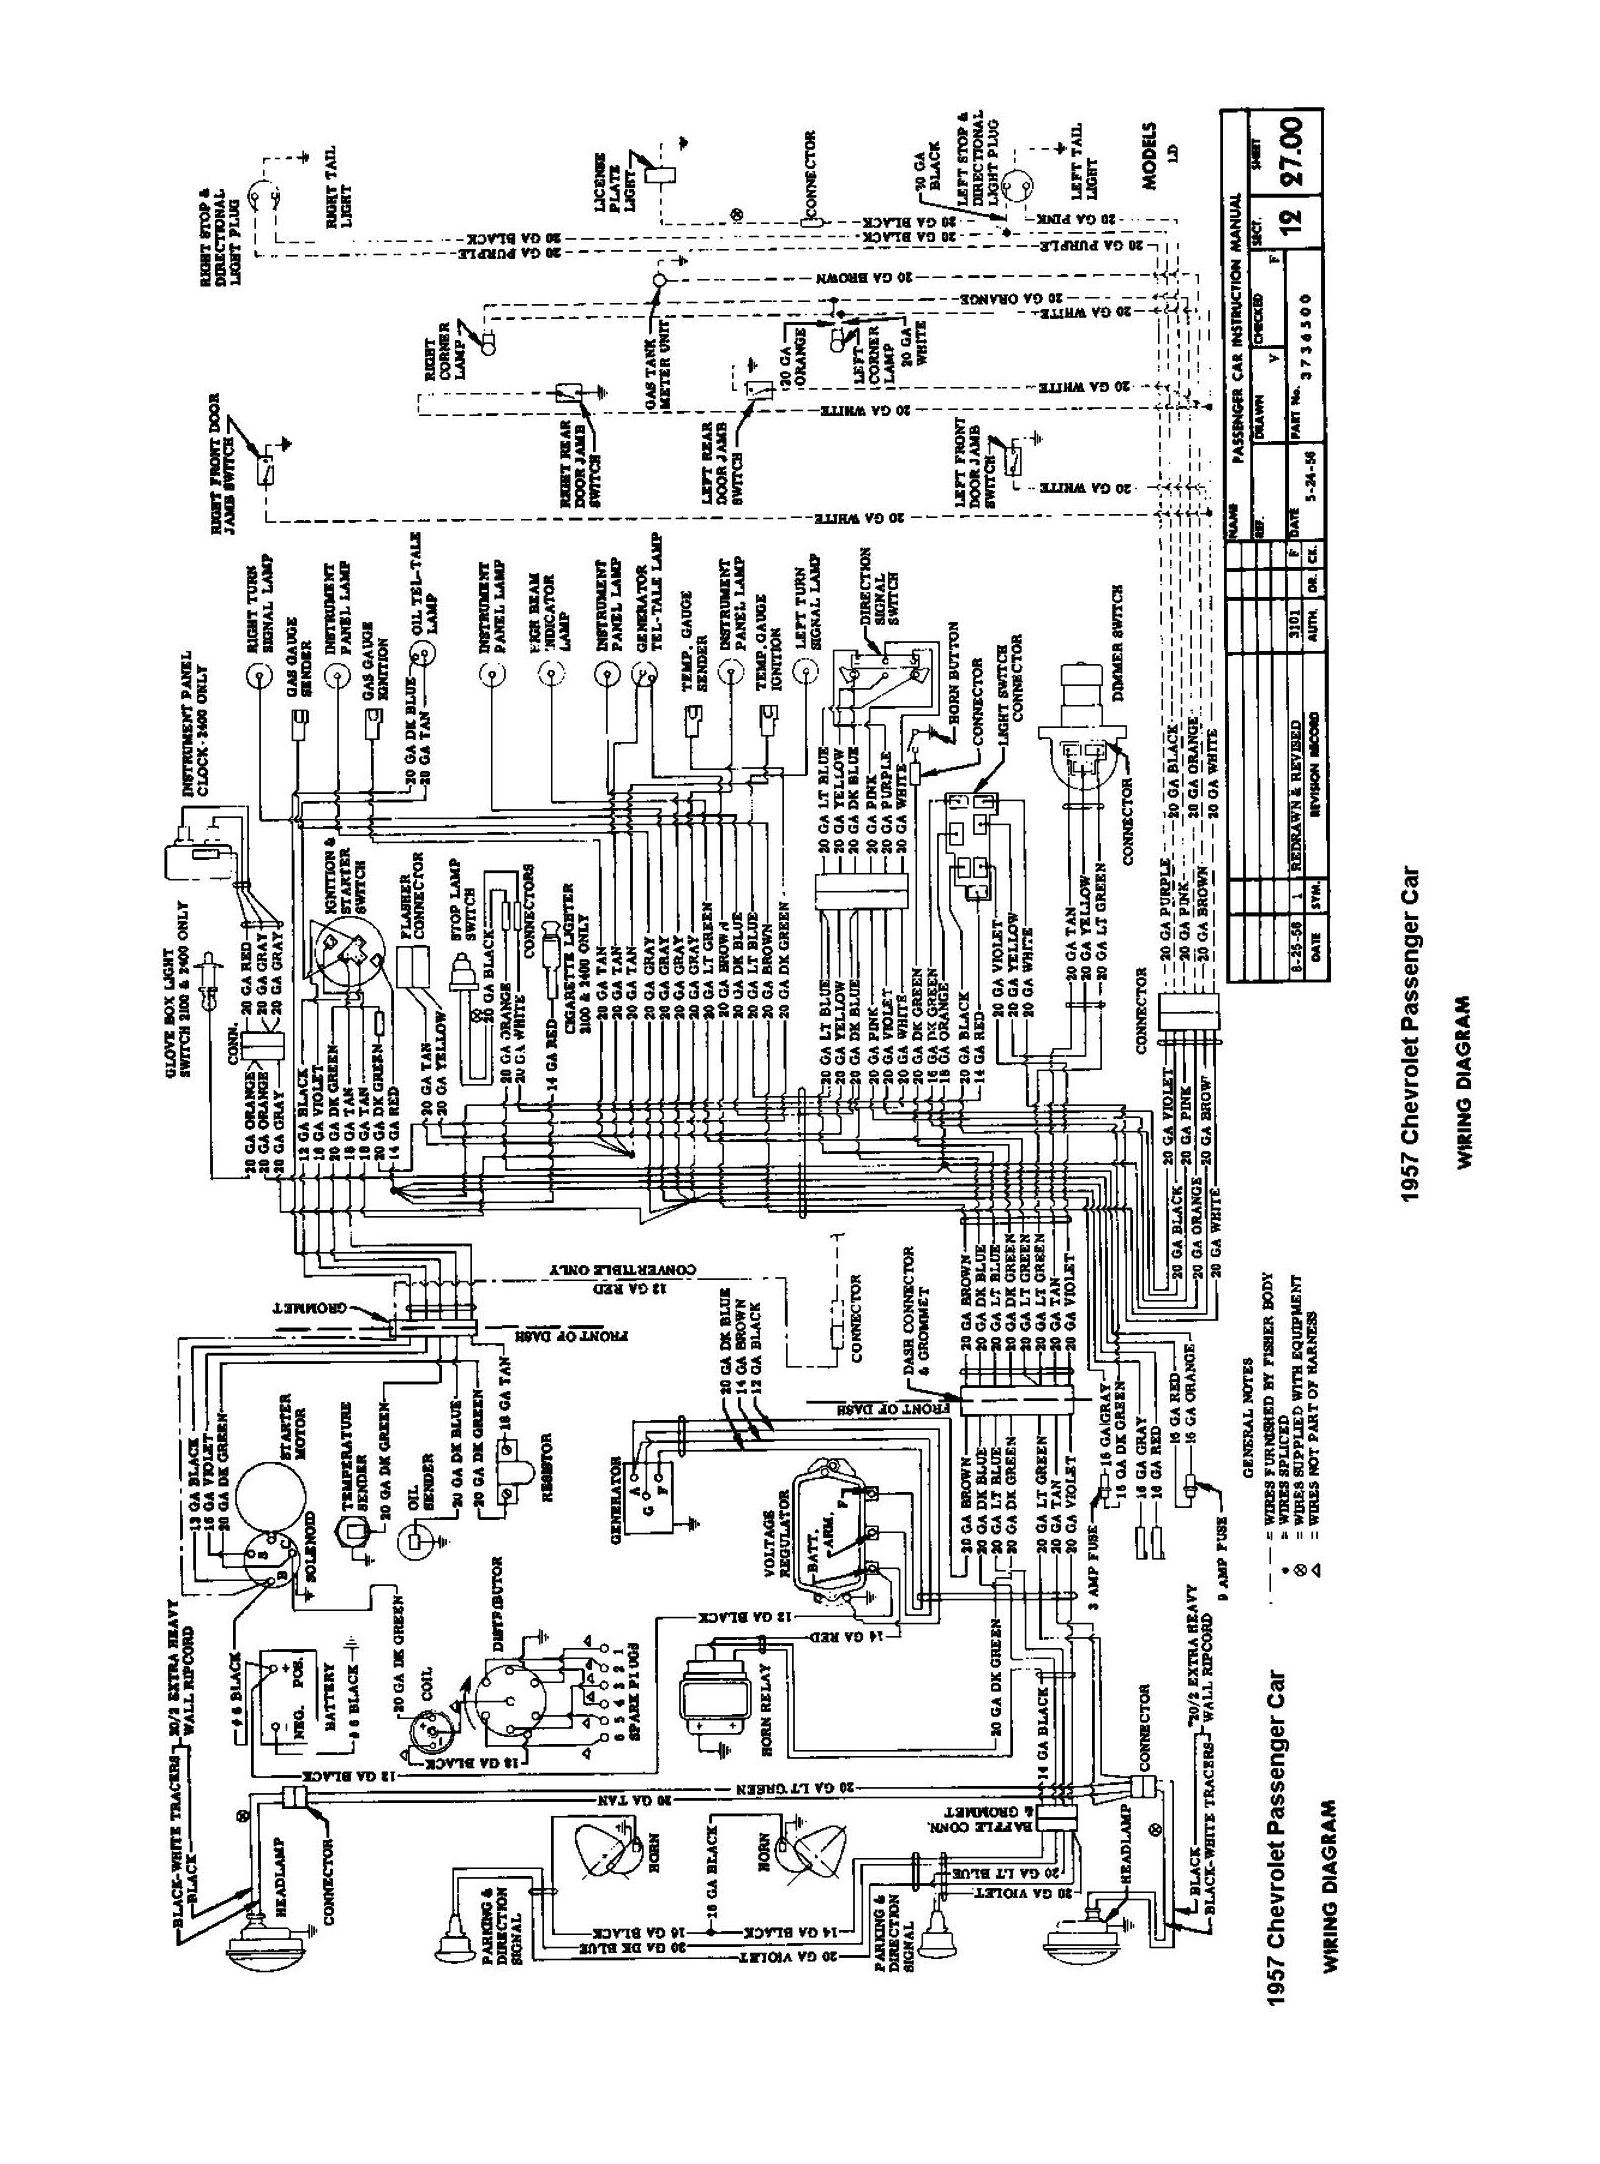 Chevy Wiring Diagrams Automotive Diagram Data In Cars Alternator